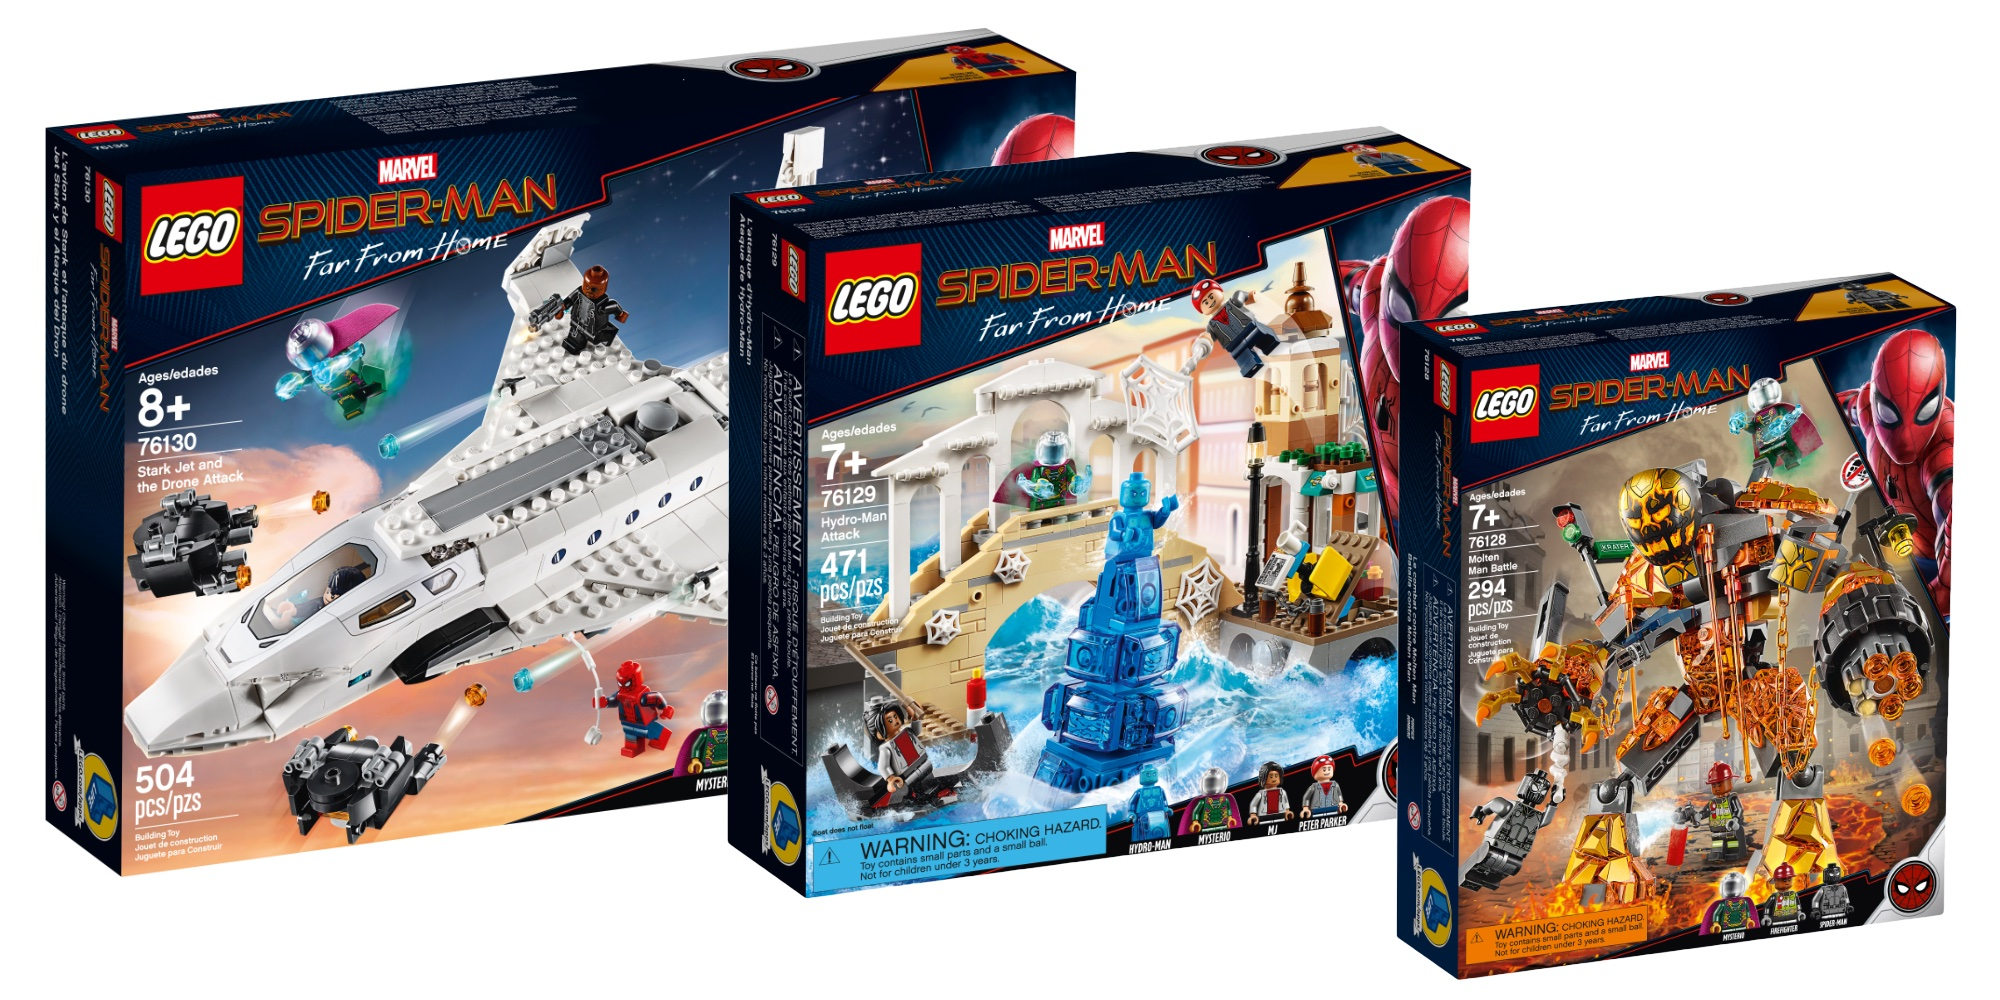 Save 20% on LEGO's all-new Spider-Man: Far From Home kits starting at $24 + more from $16